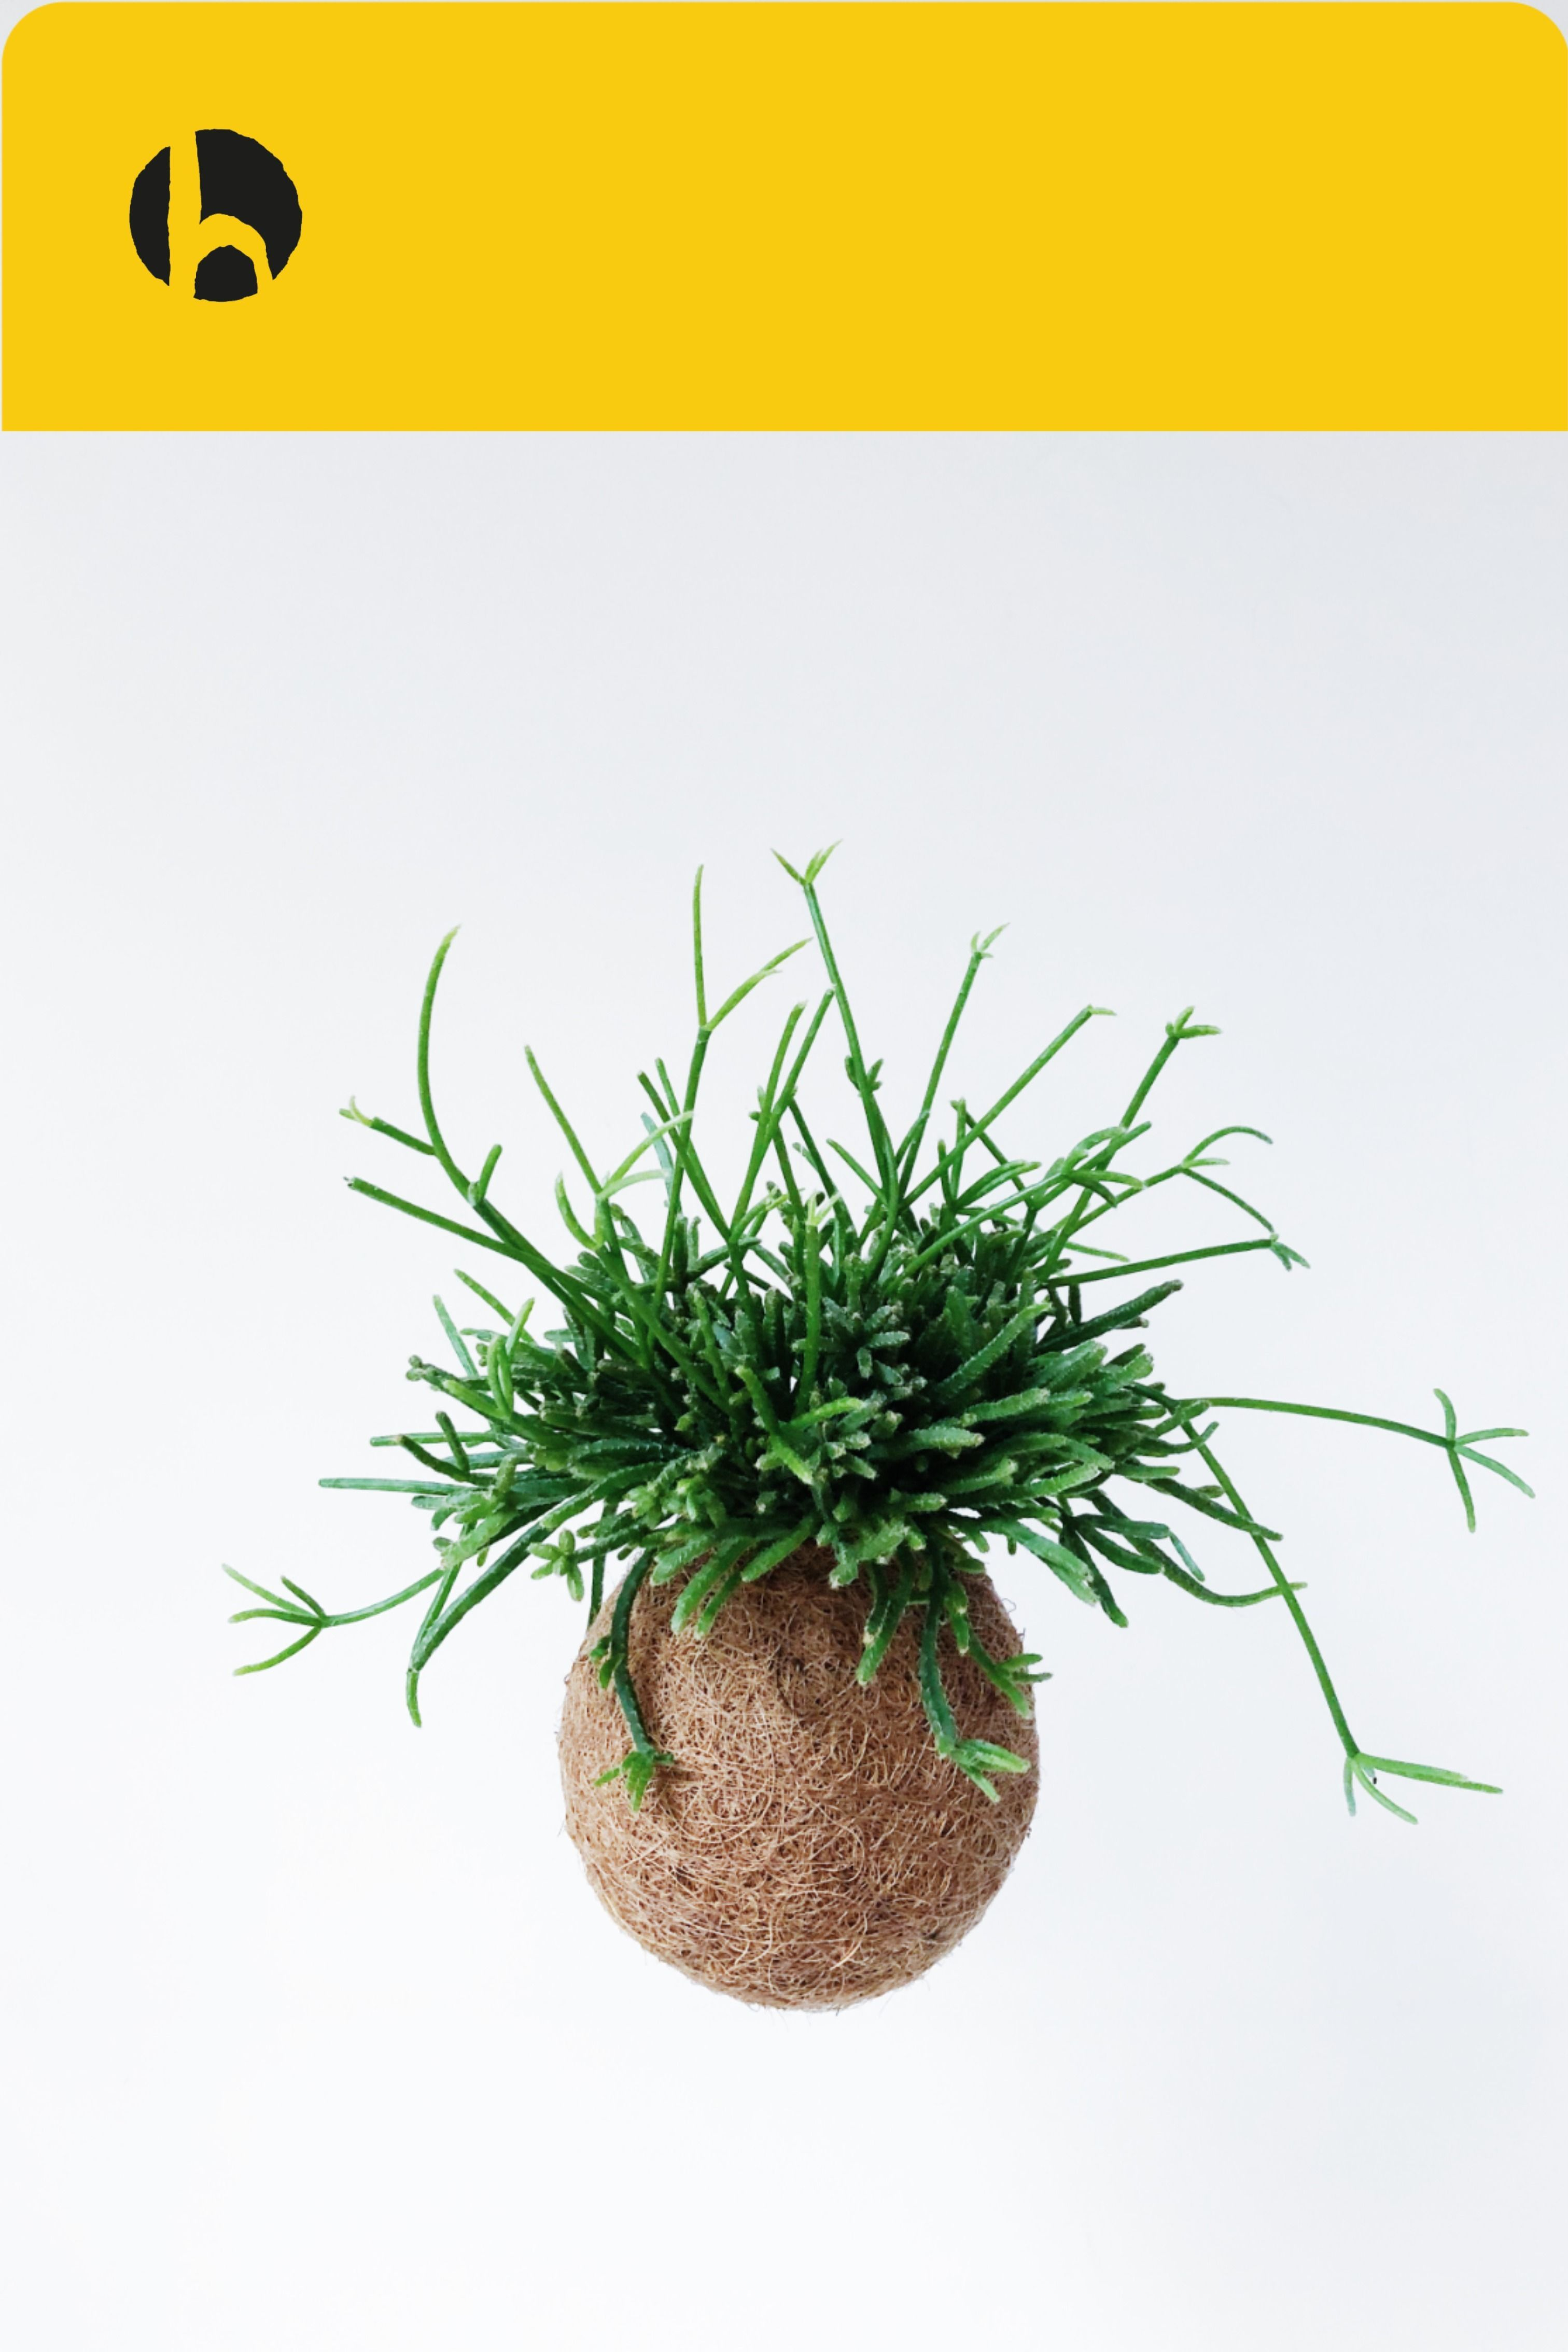 Kokedama - easy-care plants without a pot - #kokedama #plants #without - #PflanzenTopf #pflegeleichtepflanzen